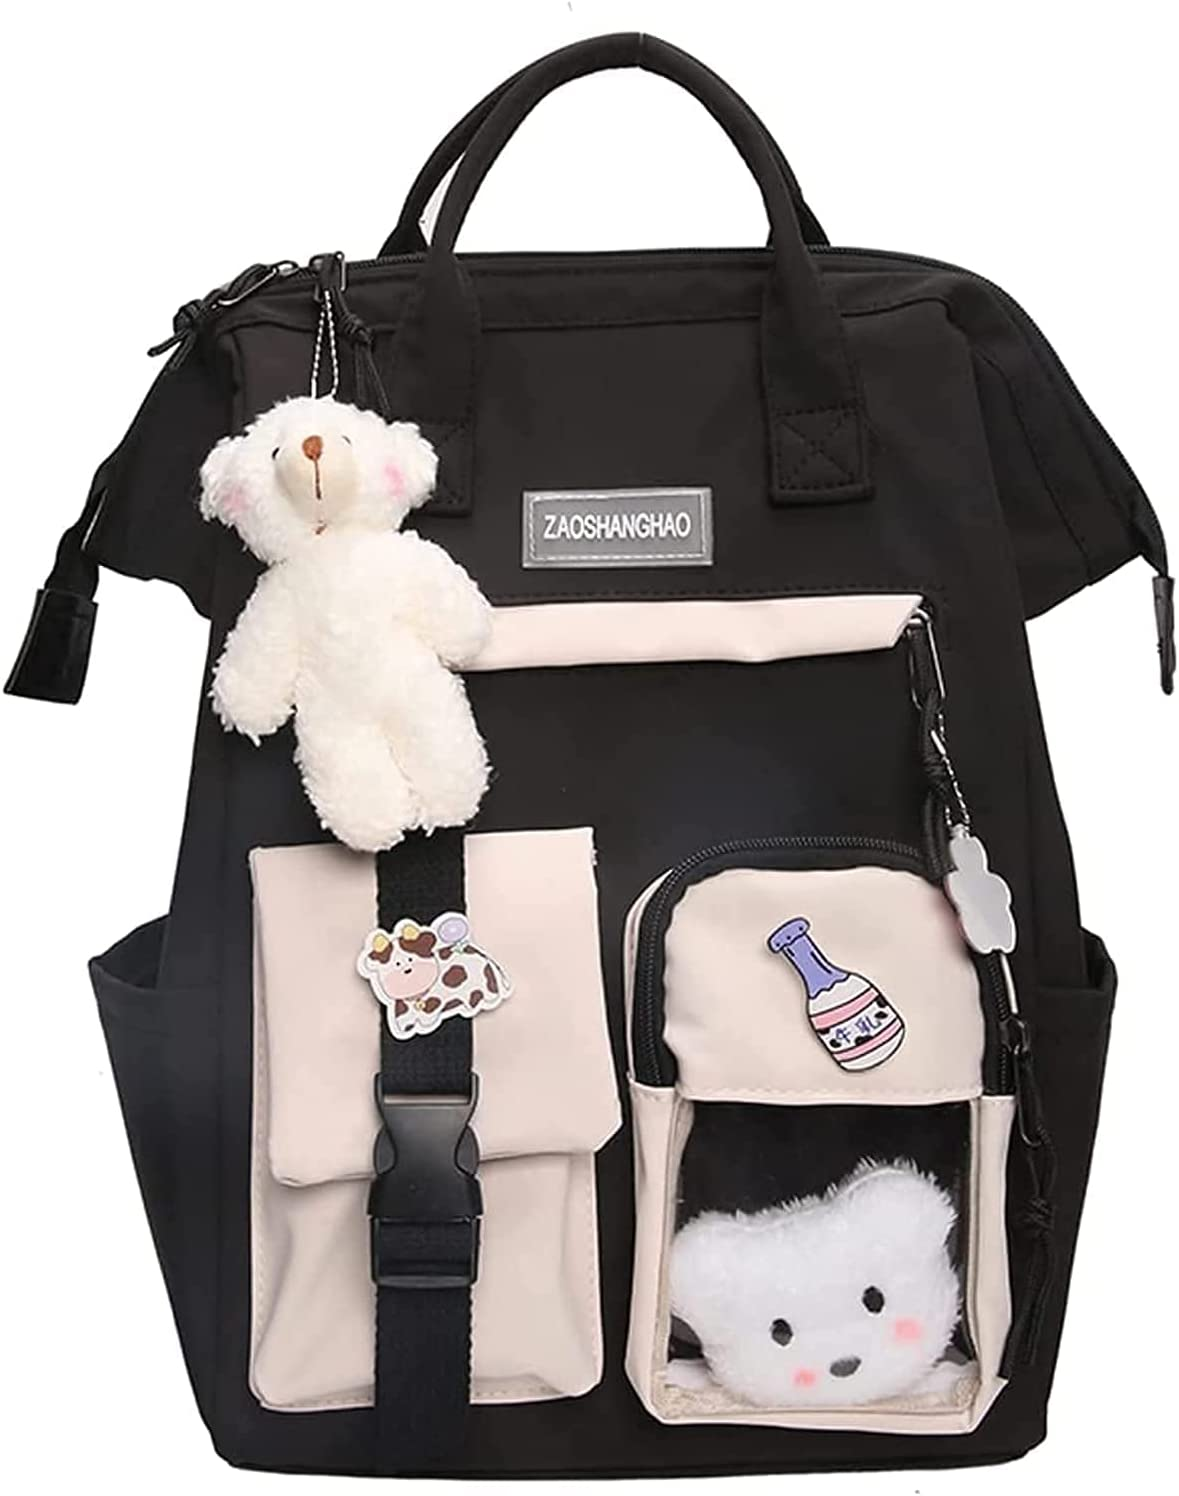 Kawaii Backpack with Pin Cute 5 ☆ popular Max 58% OFF Accessories